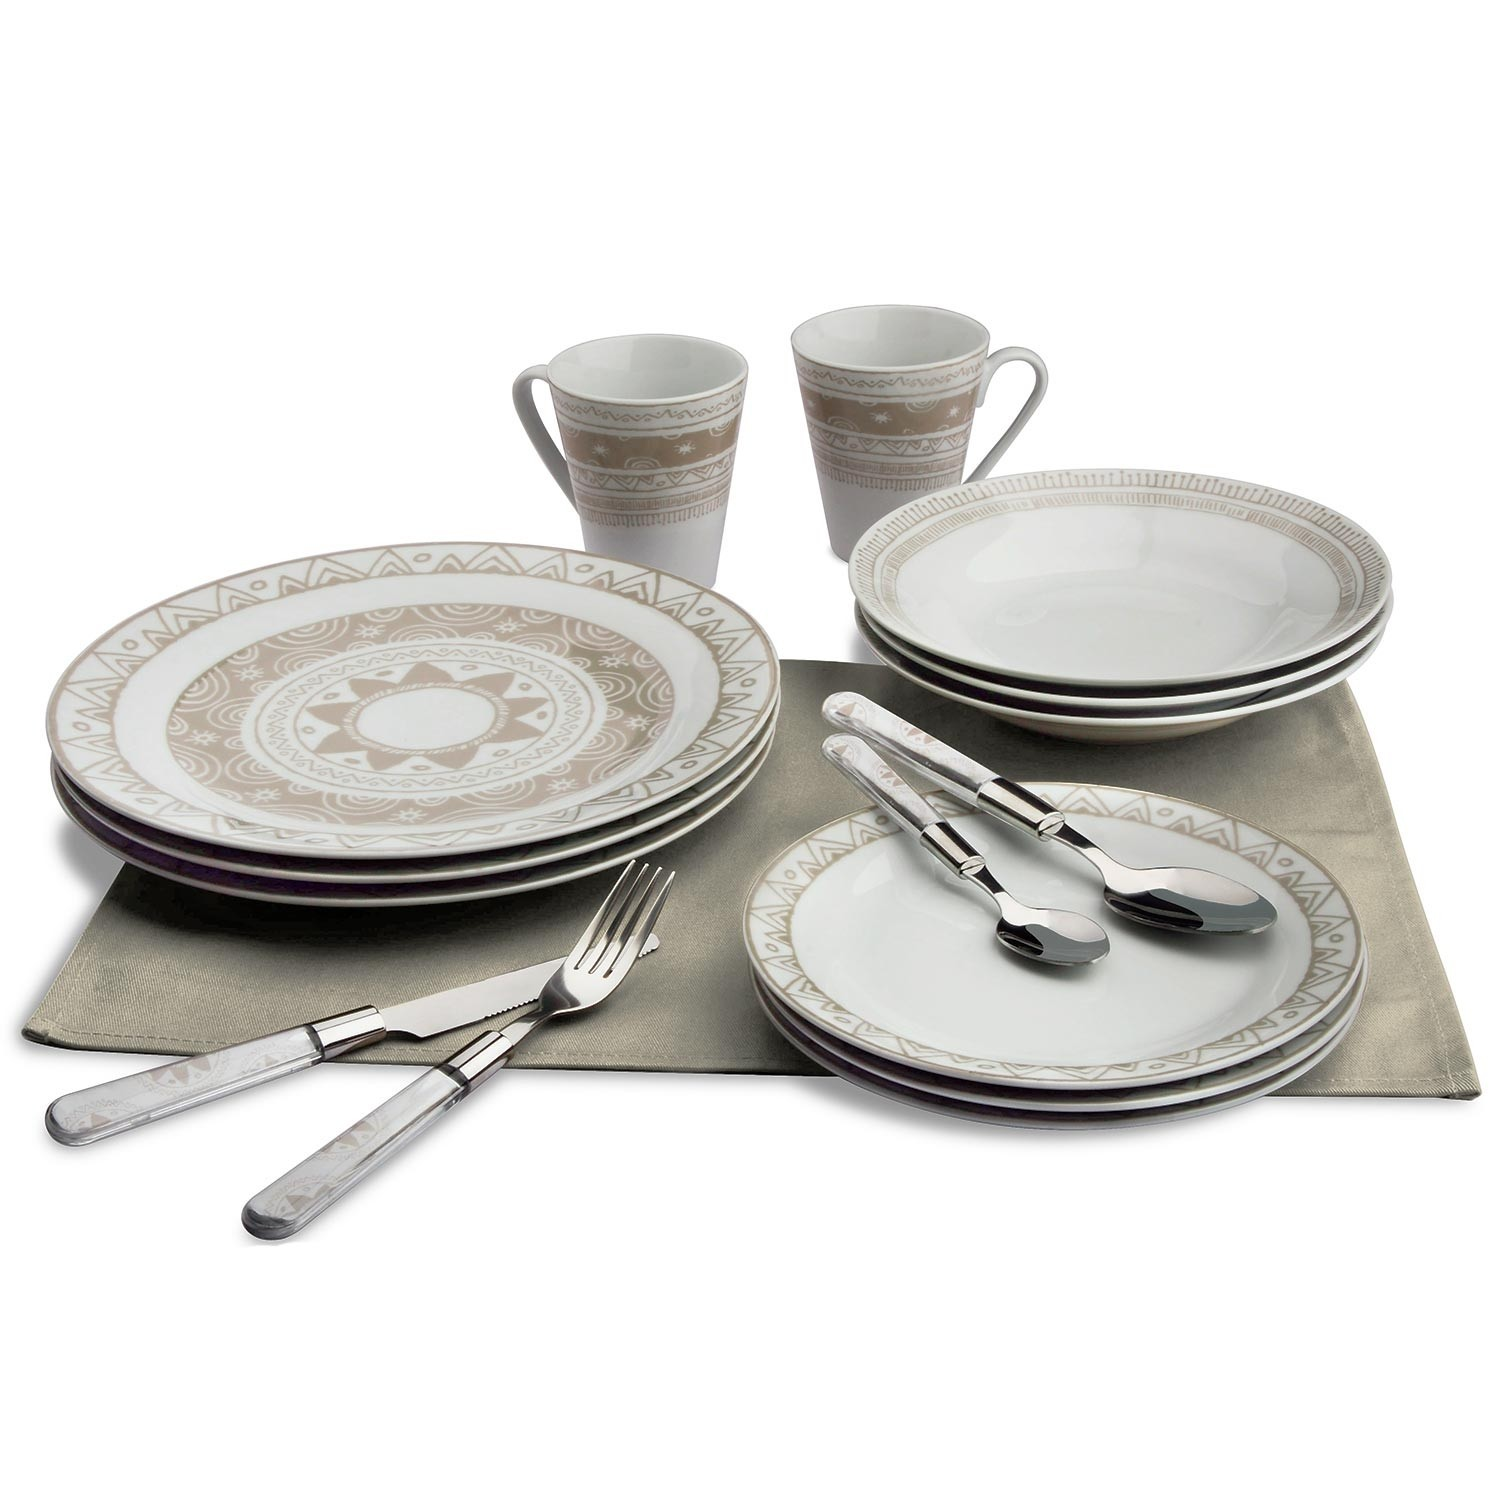 Service de table porcelaine